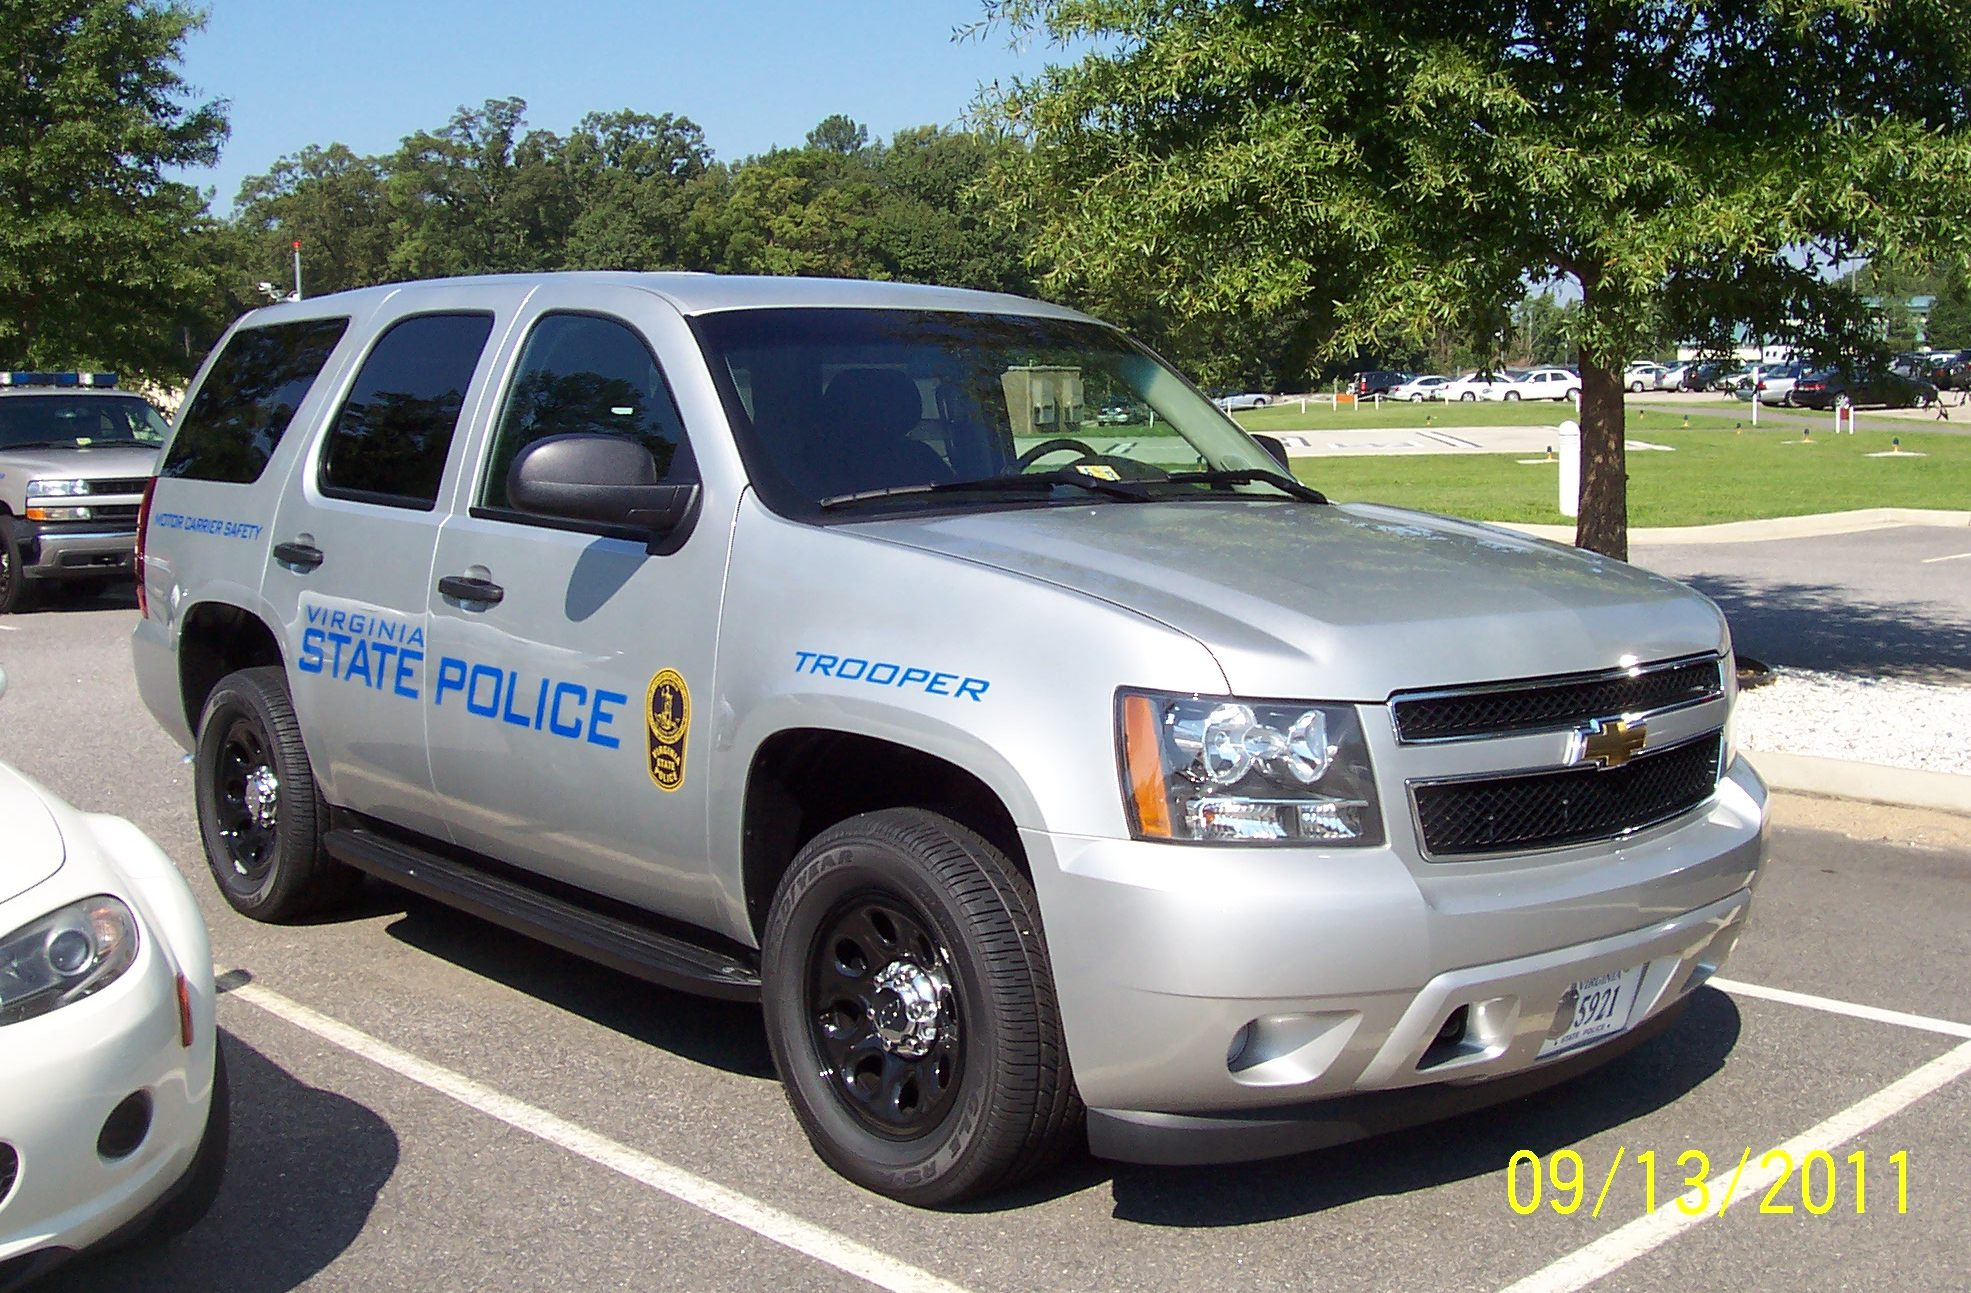 Police Cars Commercial Vehicle Enforcement